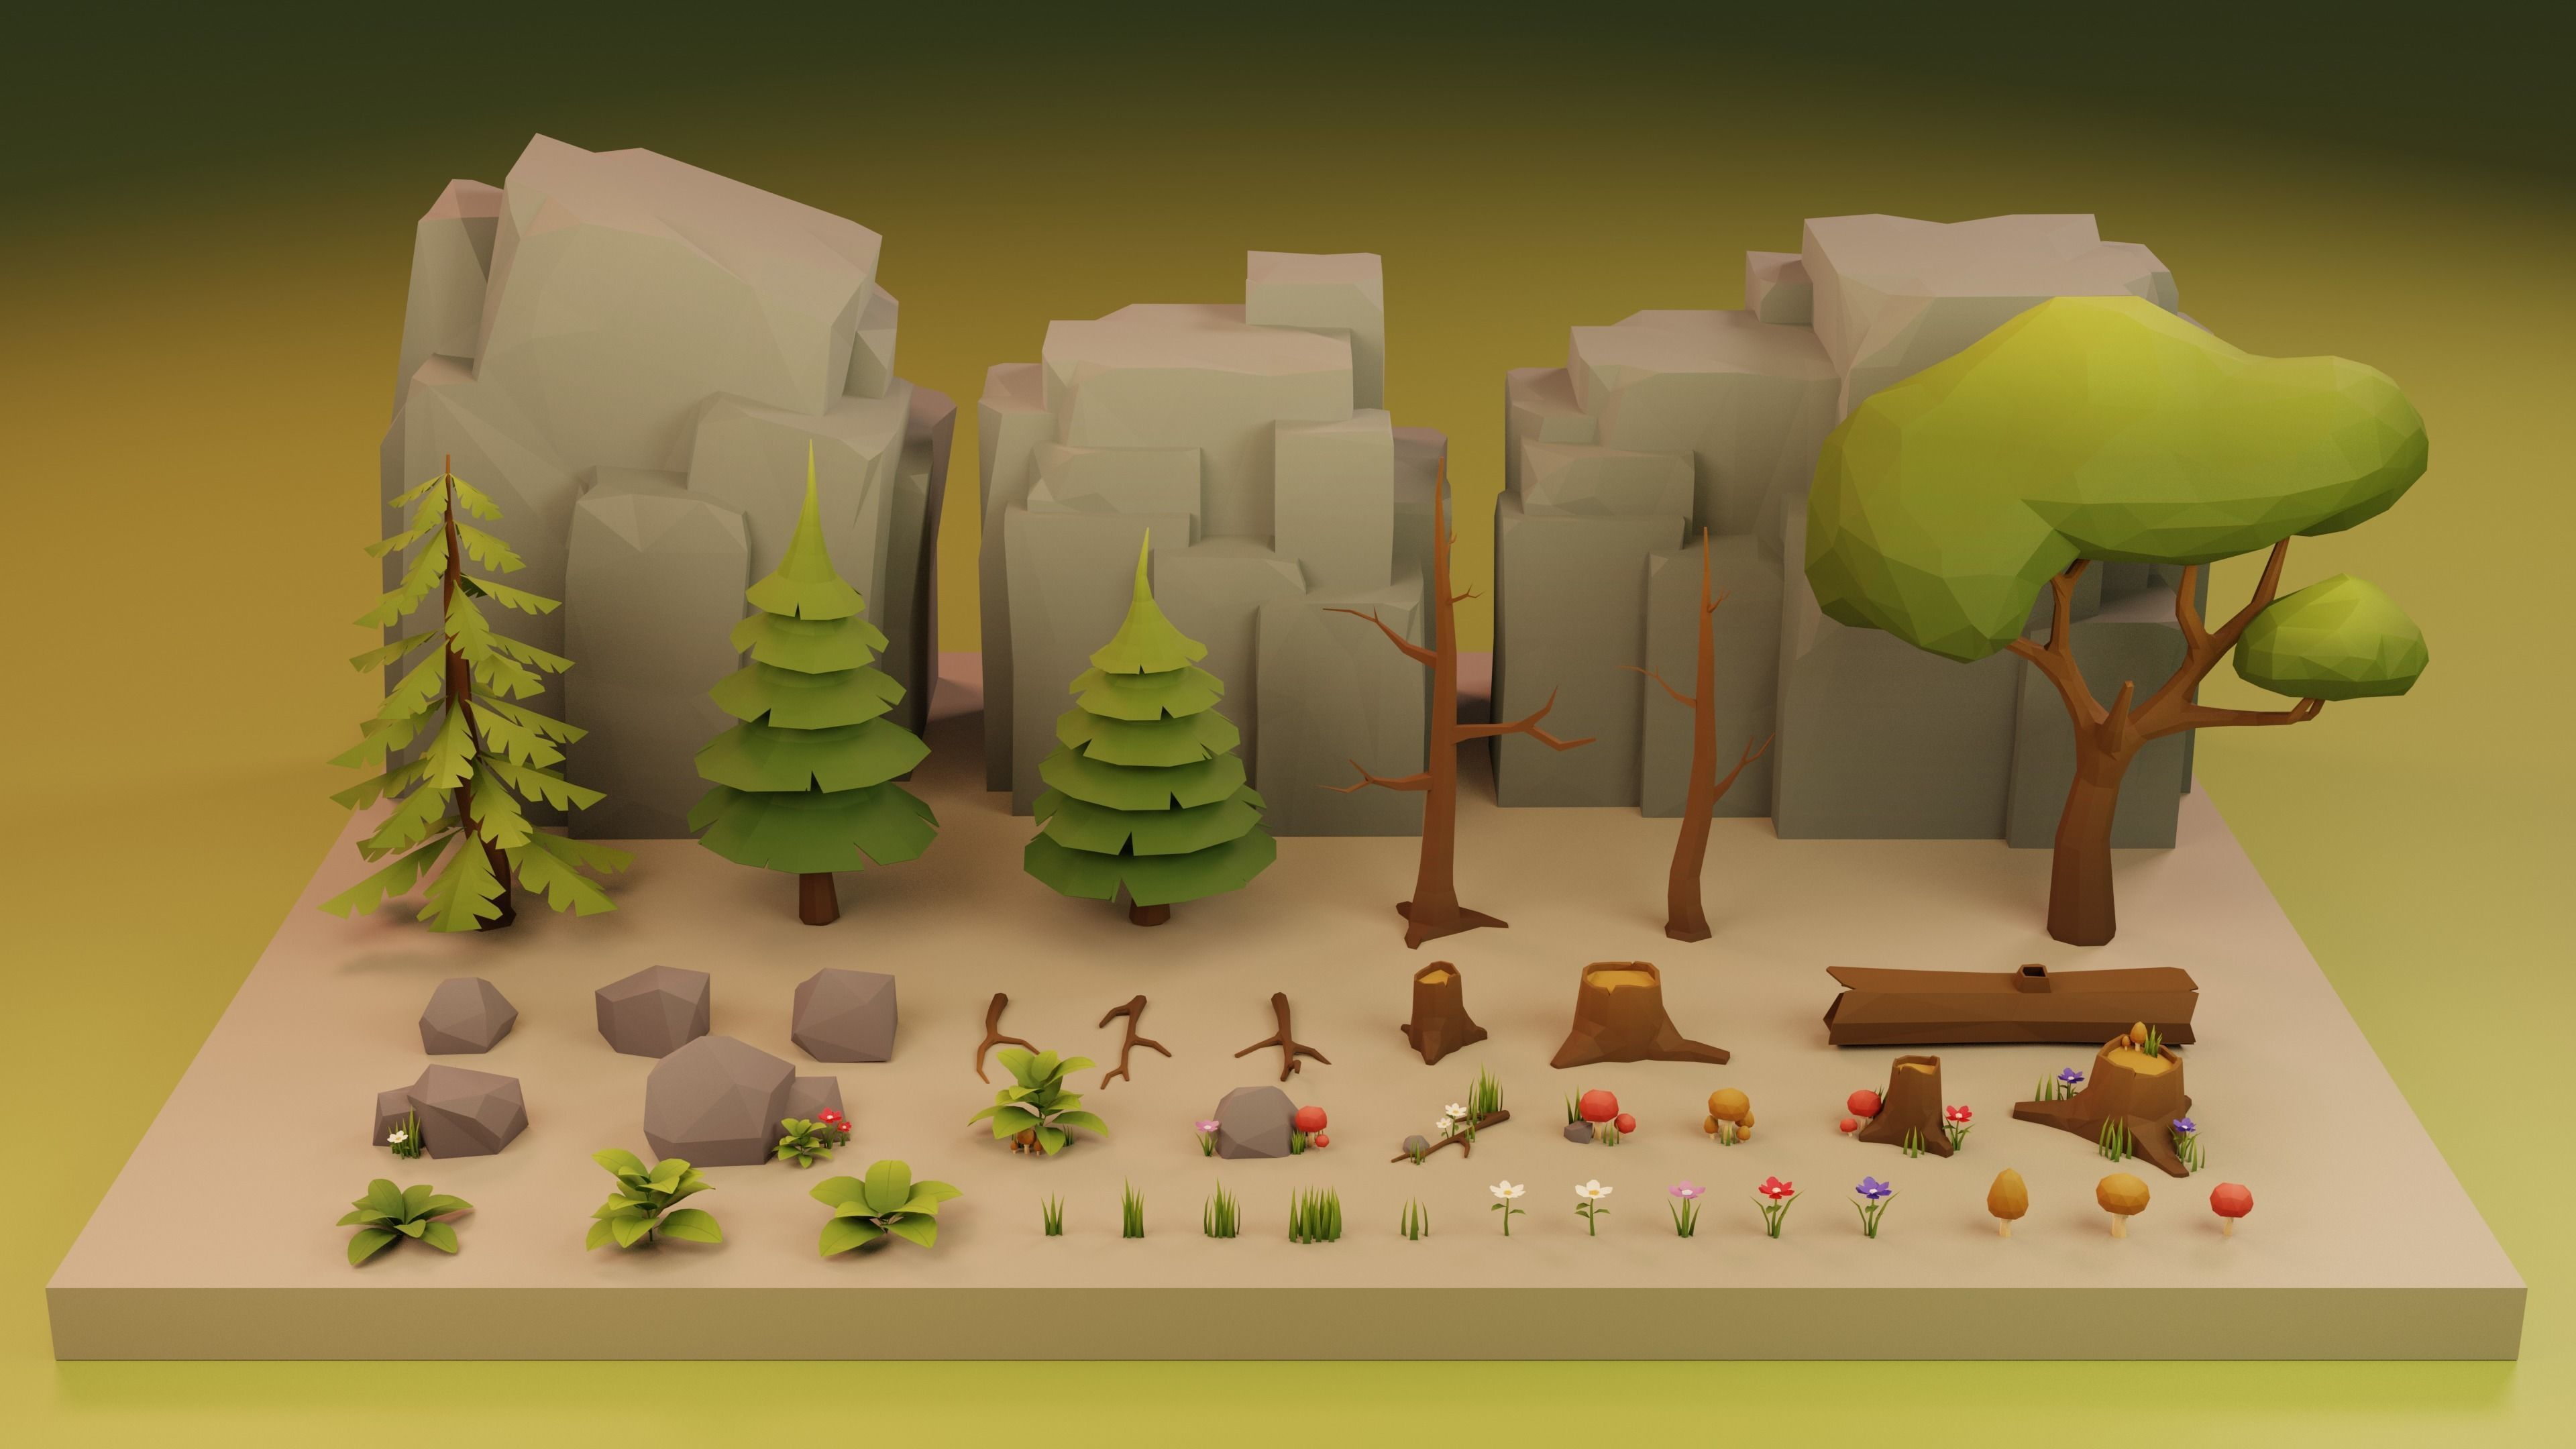 Low Poly Cartoon Trees Grass Plants and Rocks